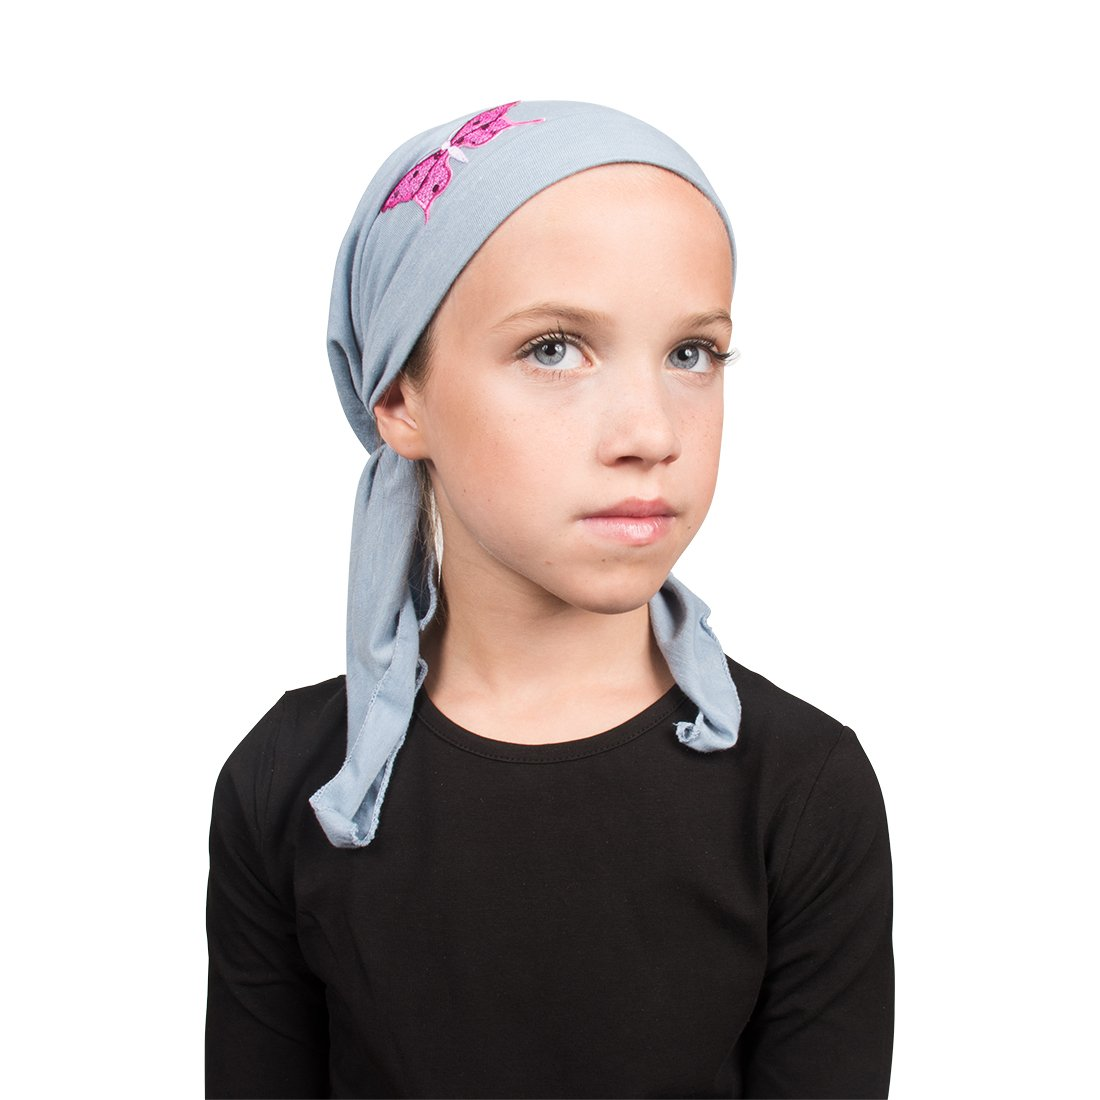 Sequin Butterfly Applique on Child's Pretied Head Scarf Cancer Cap Landana Headscarves ldptk-a23-black